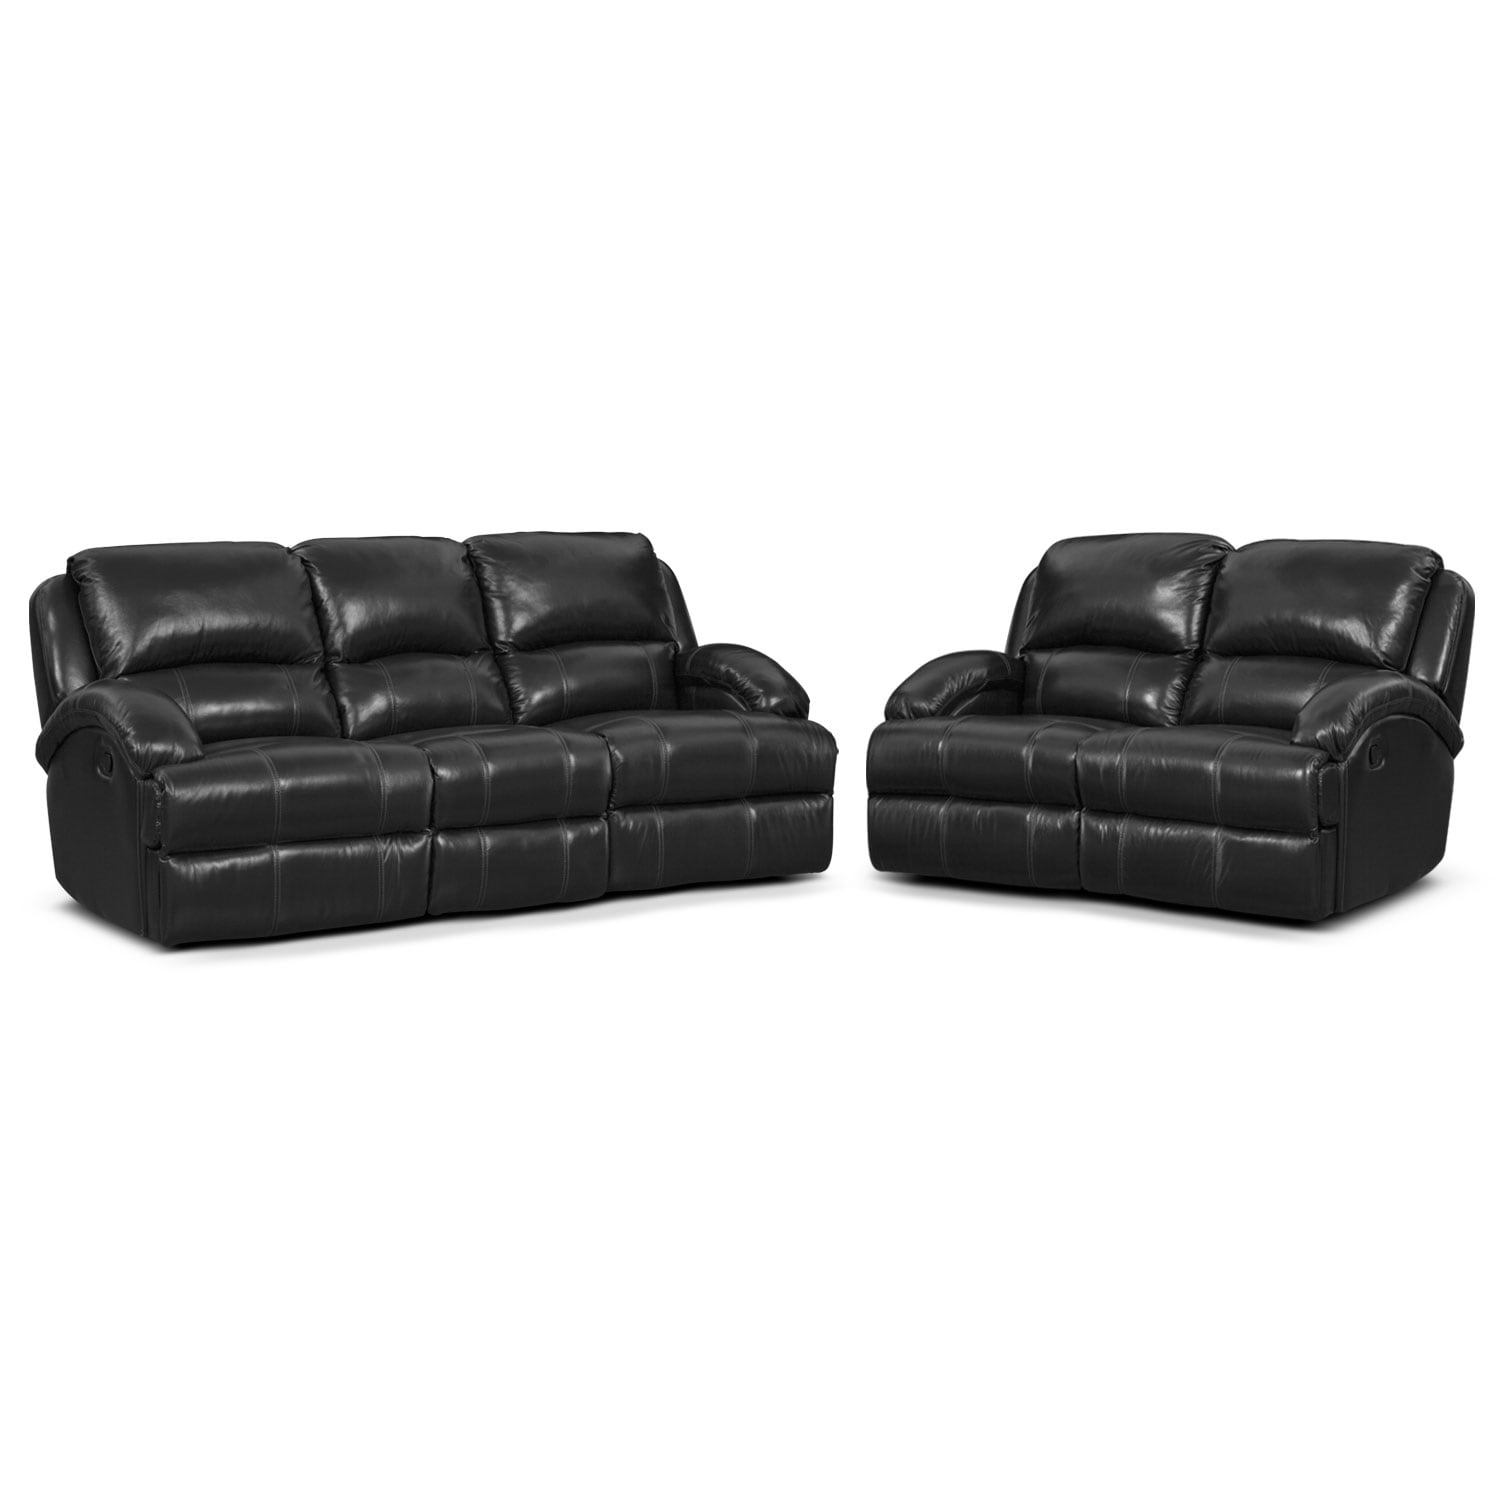 Living Room Furniture - Nolan Dual Reclining Sofa and Reclining Loveseat Set - Black